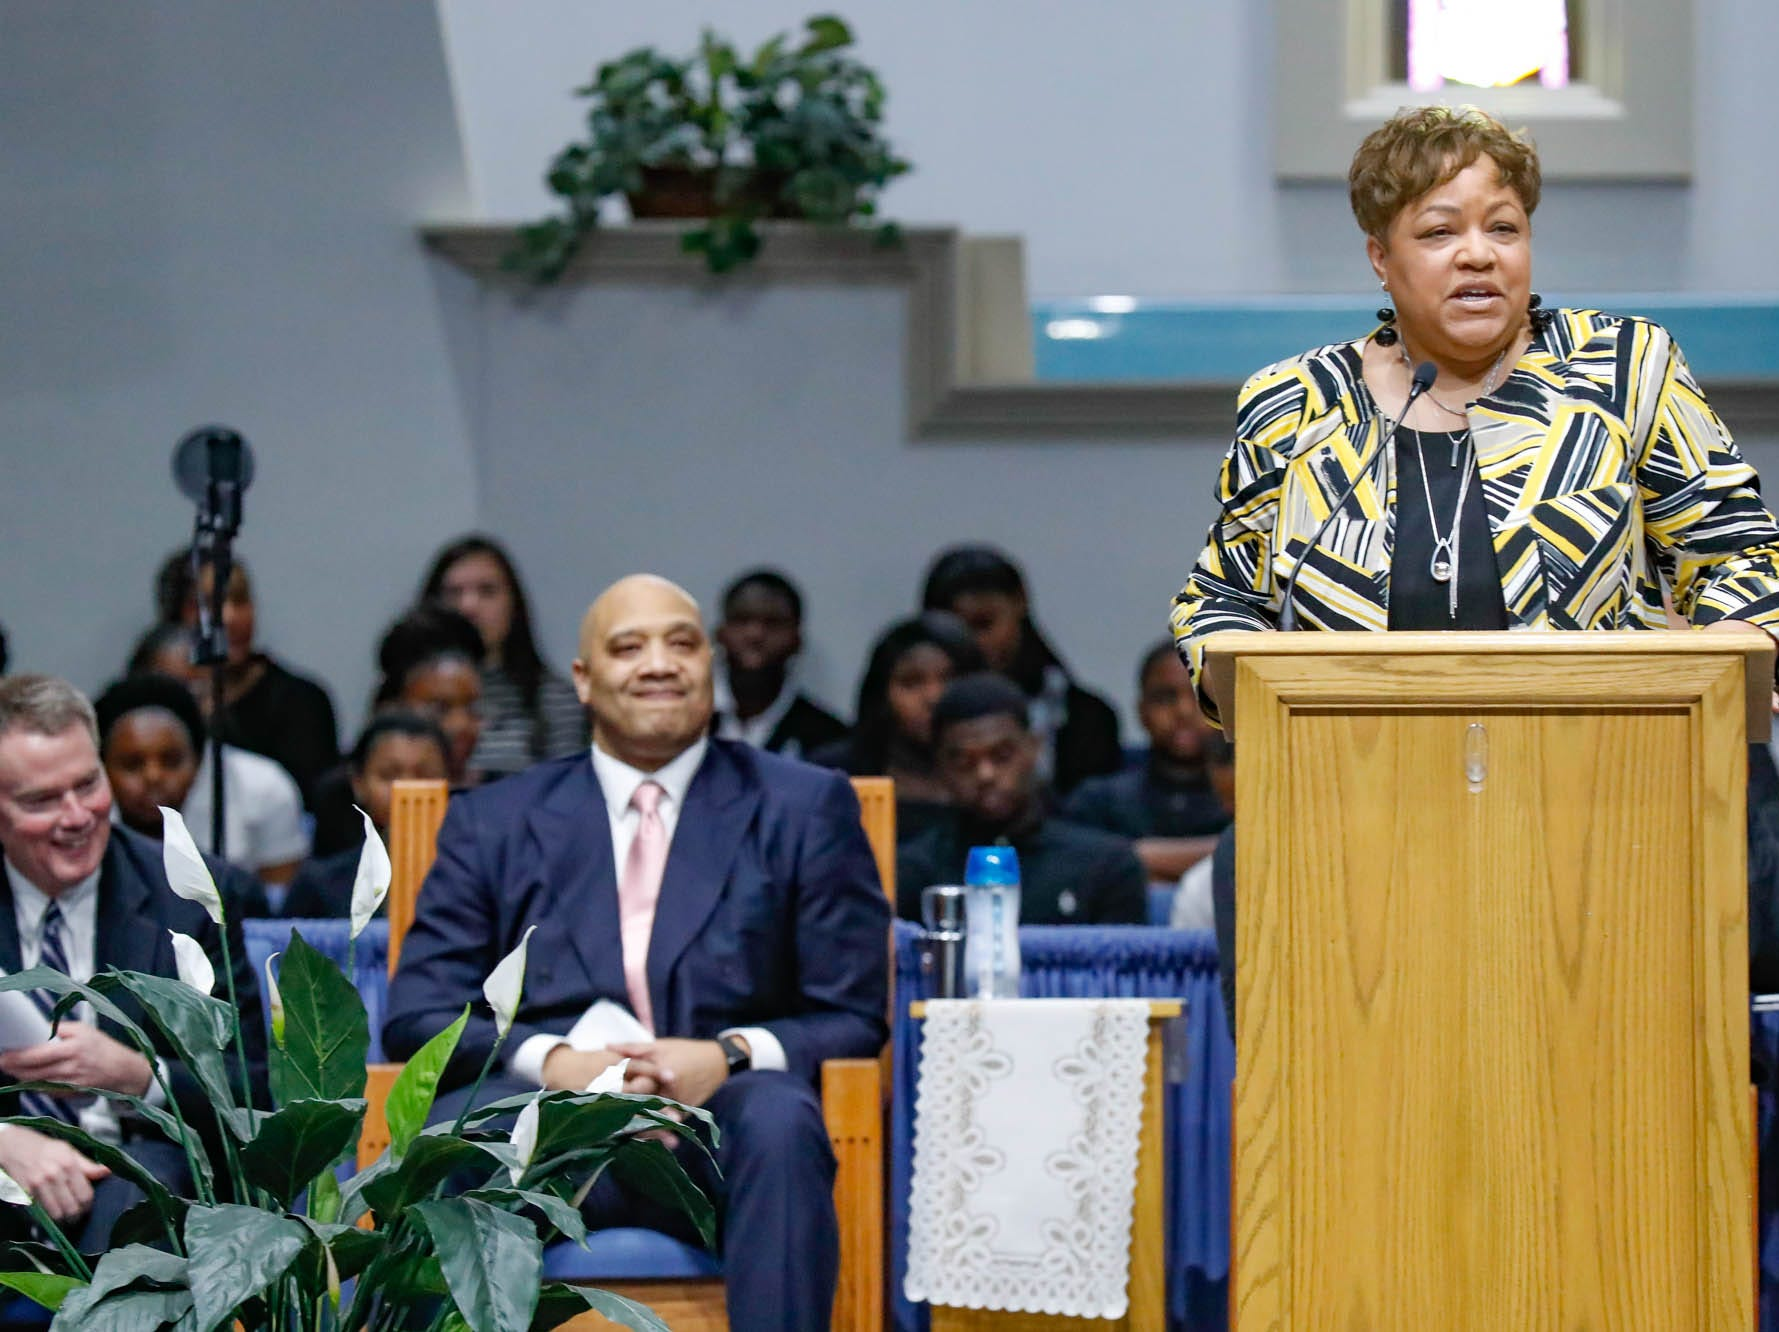 """Director of Diversity and EEO, Ms. Darlene Sedwick, speaks during the annual Steward Speakers Lecture Series event, held at Olivet Missionary Baptist Church in Indianapolis on Thursday, Feb. 21, 2019. This years theme was """"Year of the woman""""."""